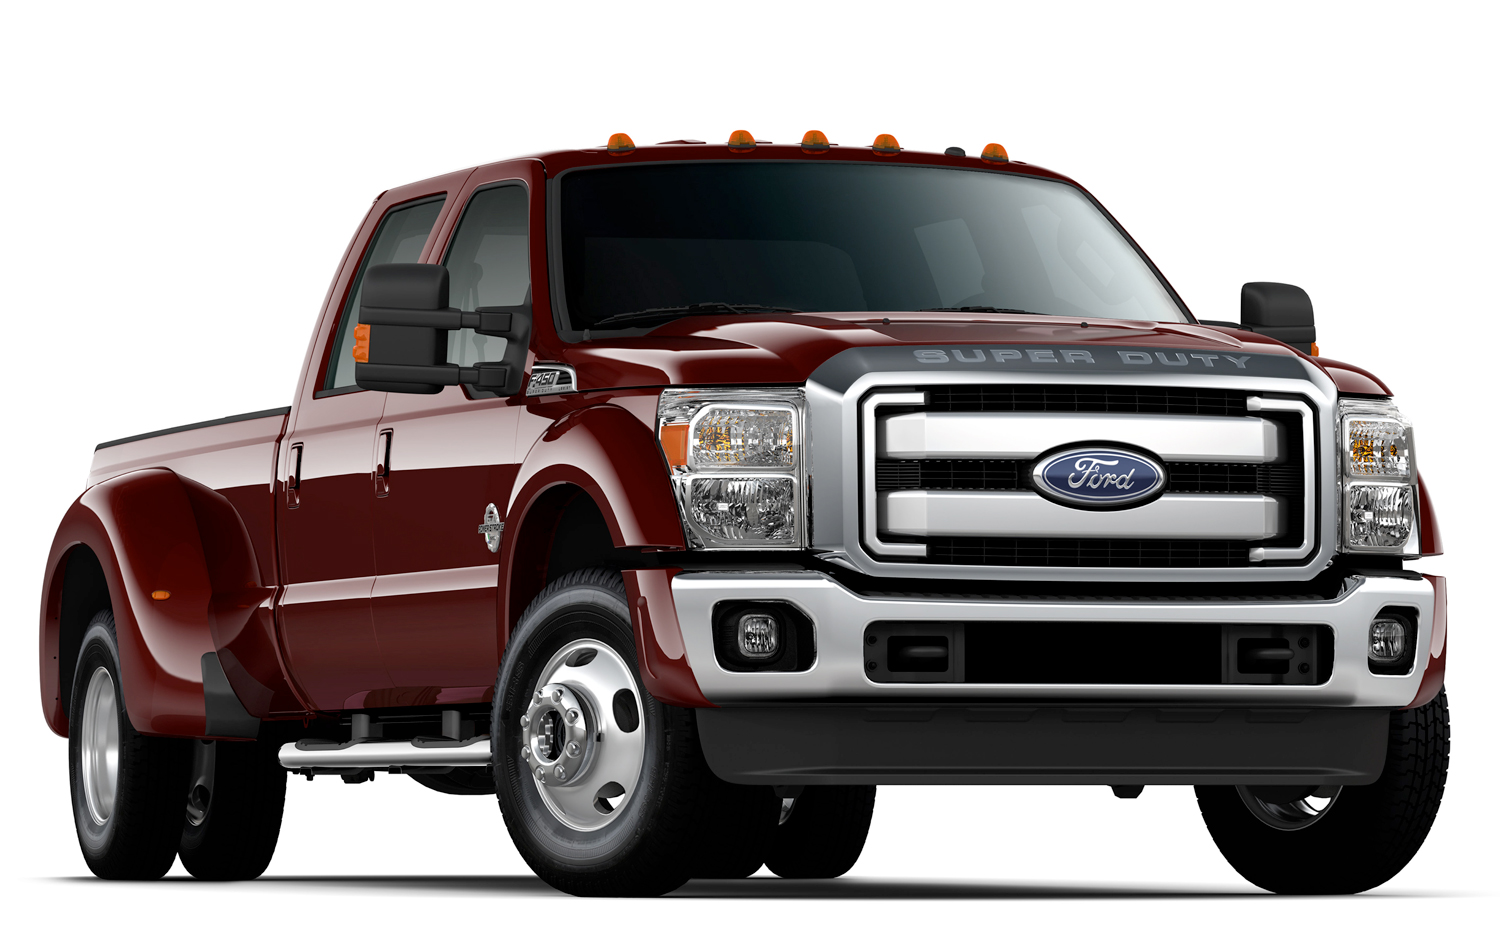 Ford F-350 Super Duty #13